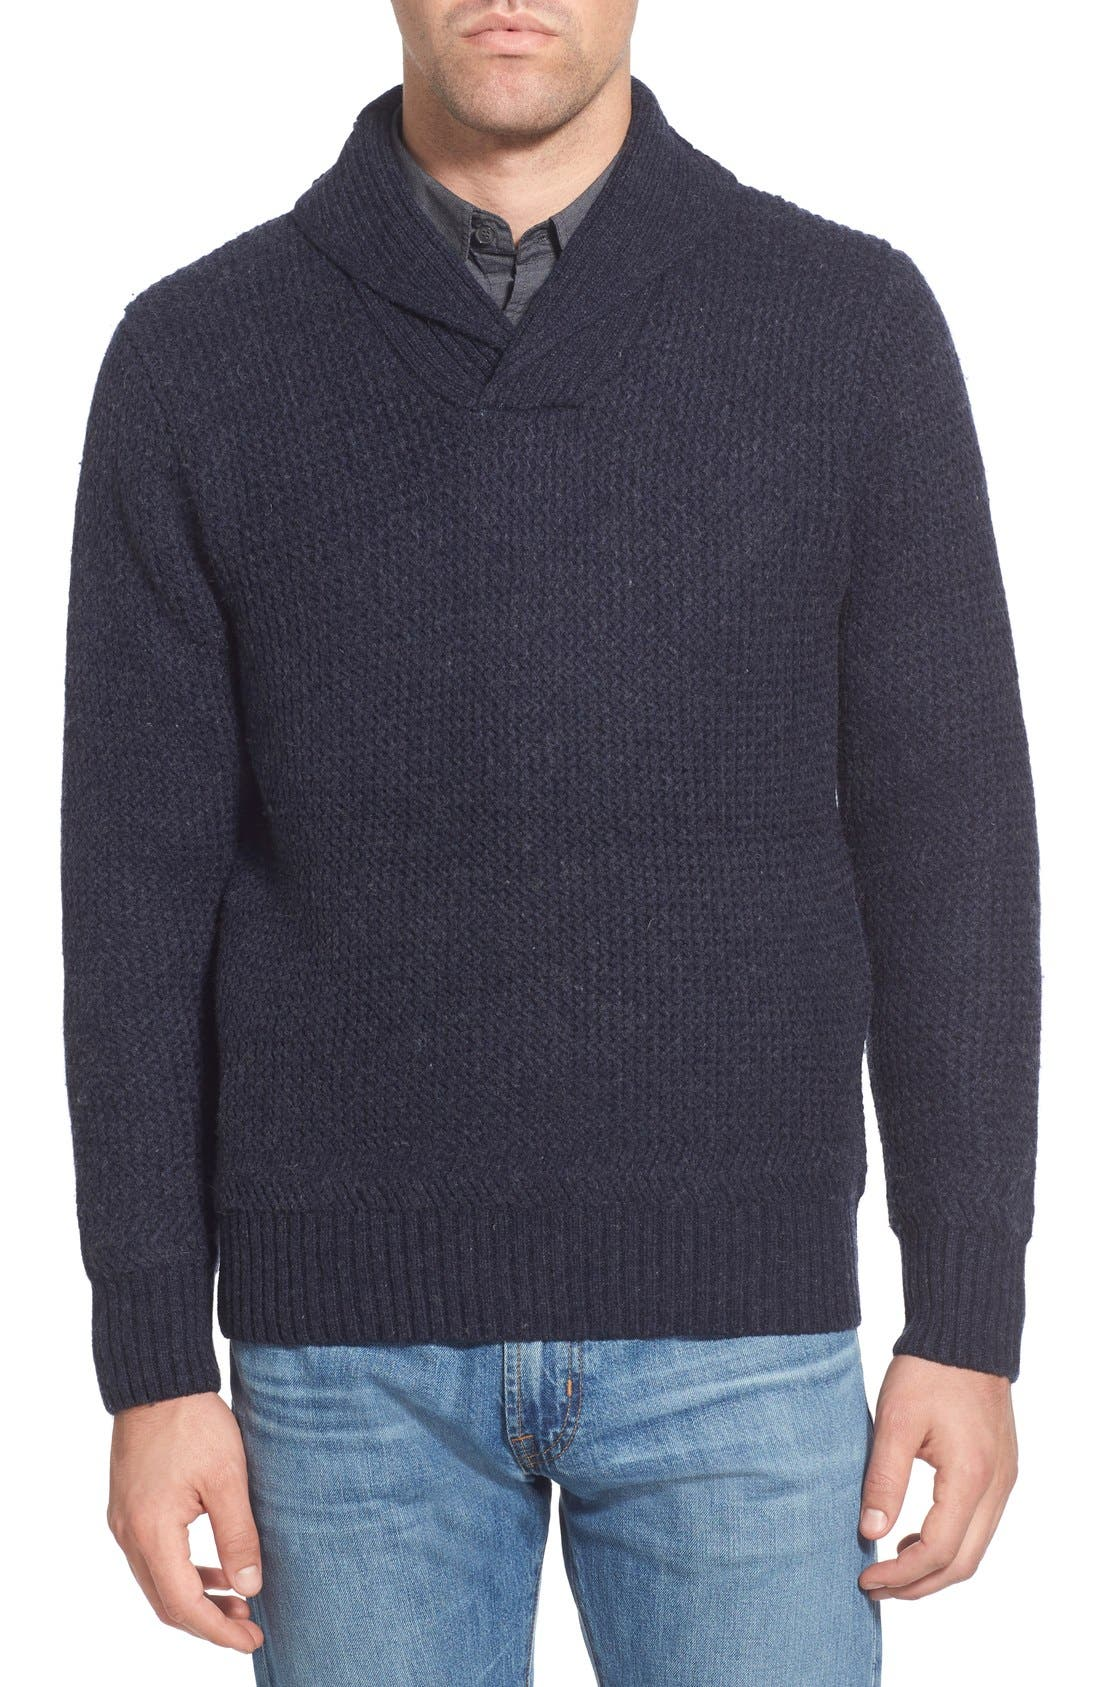 Regular Fit Shawl Collar Sweater,                         Main,                         color, Navy